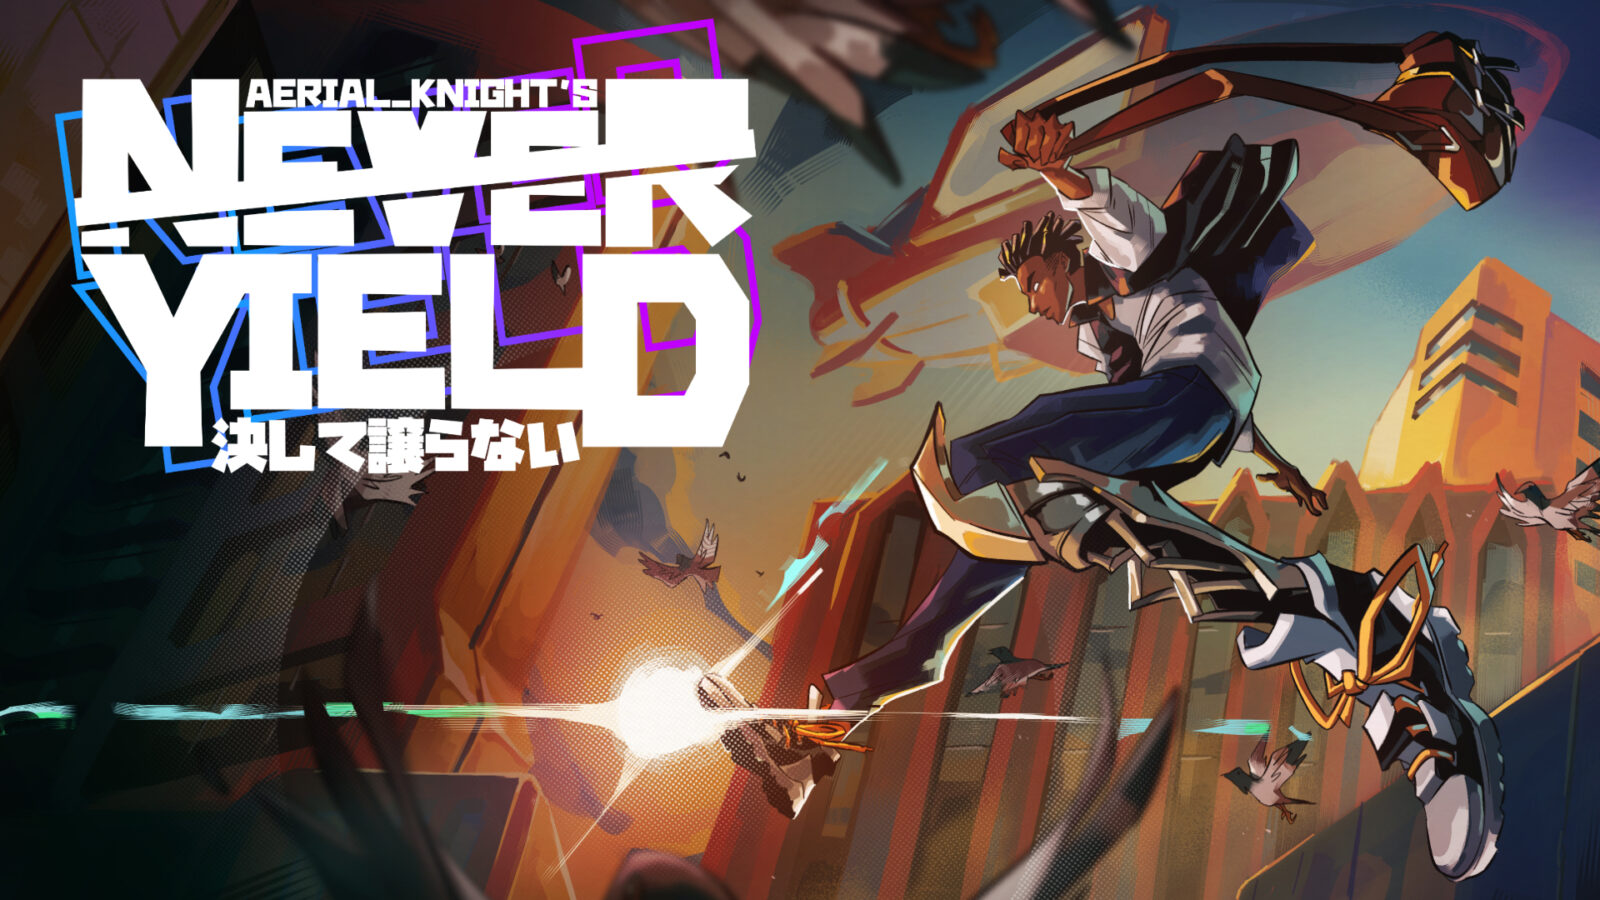 2021-best-games-so-far-summer-aerial-knights-never-yield-switch-hero